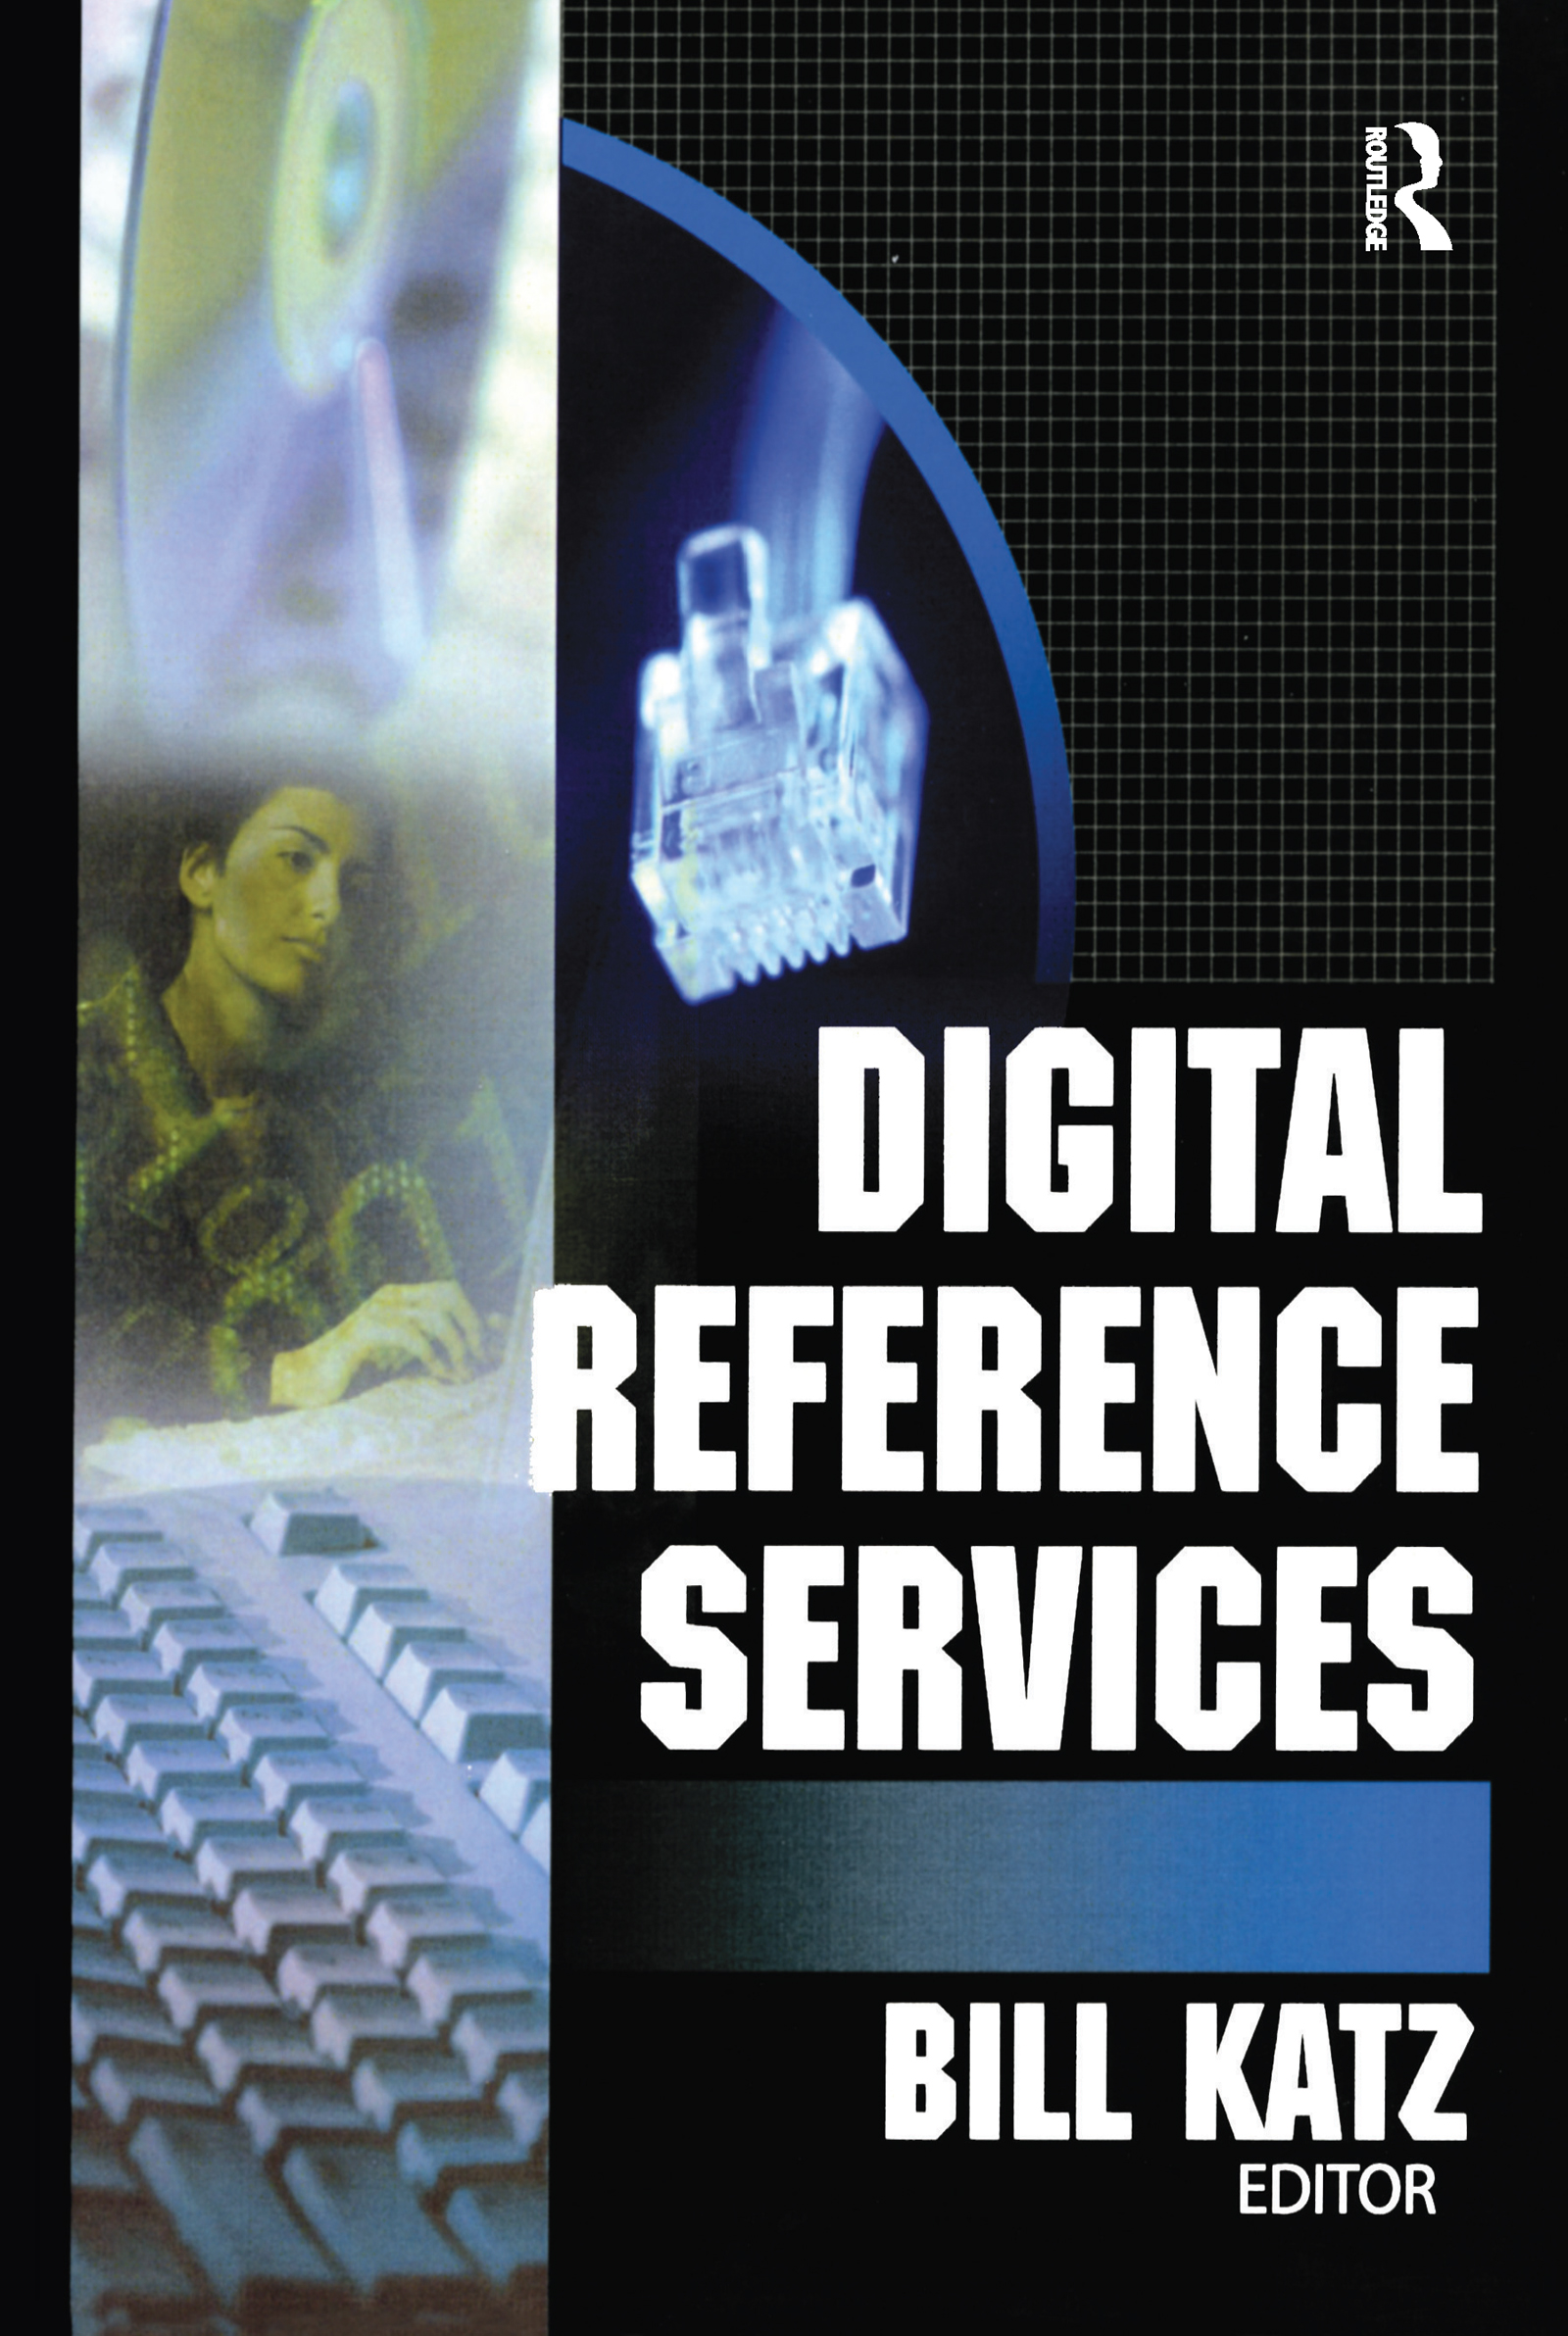 Digital Reference Services book cover